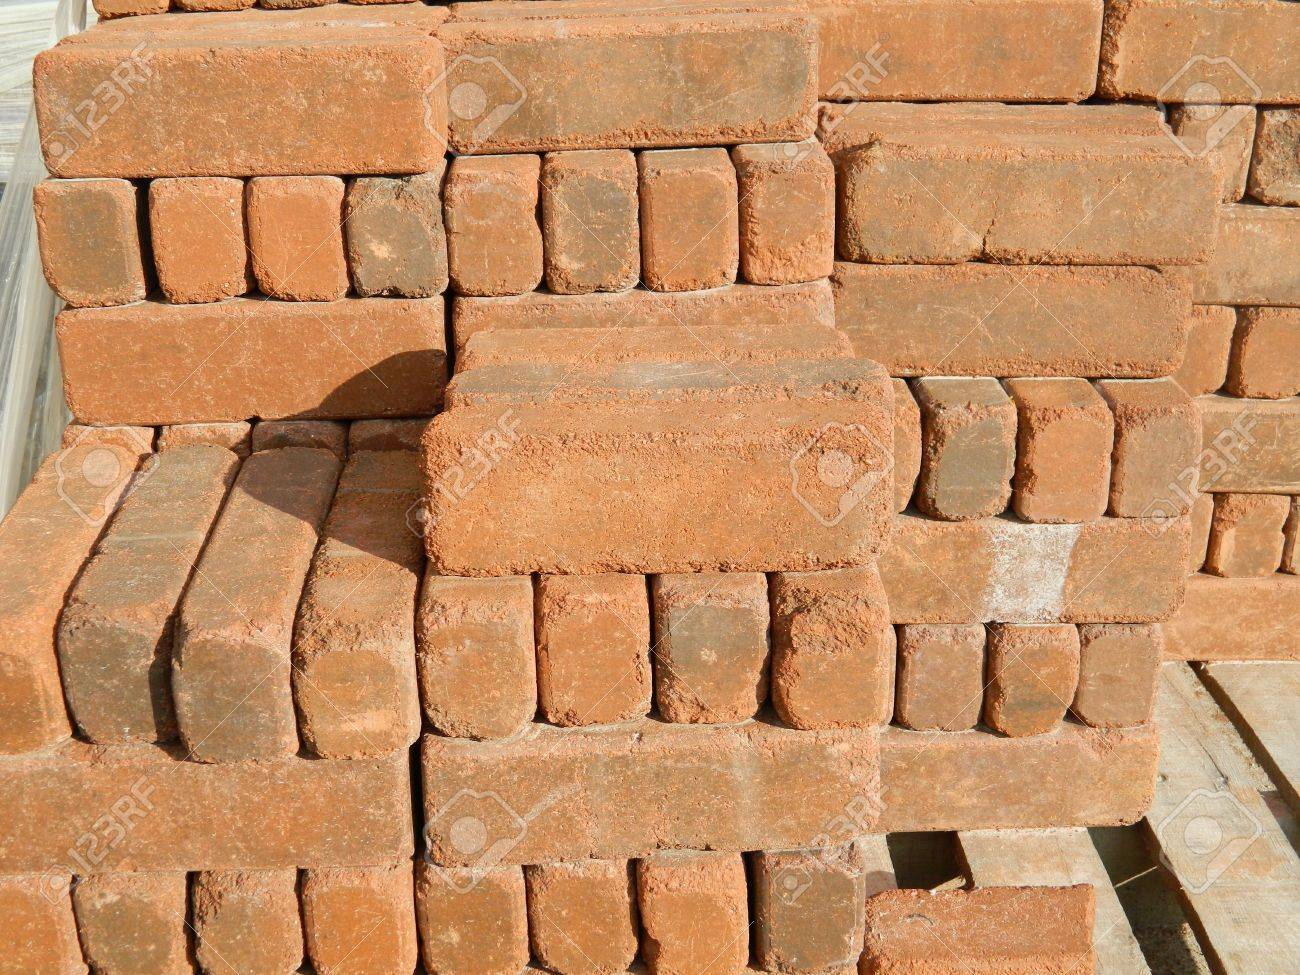 Clay Brick Pavers Palletized Clay Brick Pavers Stock Photo Picture And Royalty Free